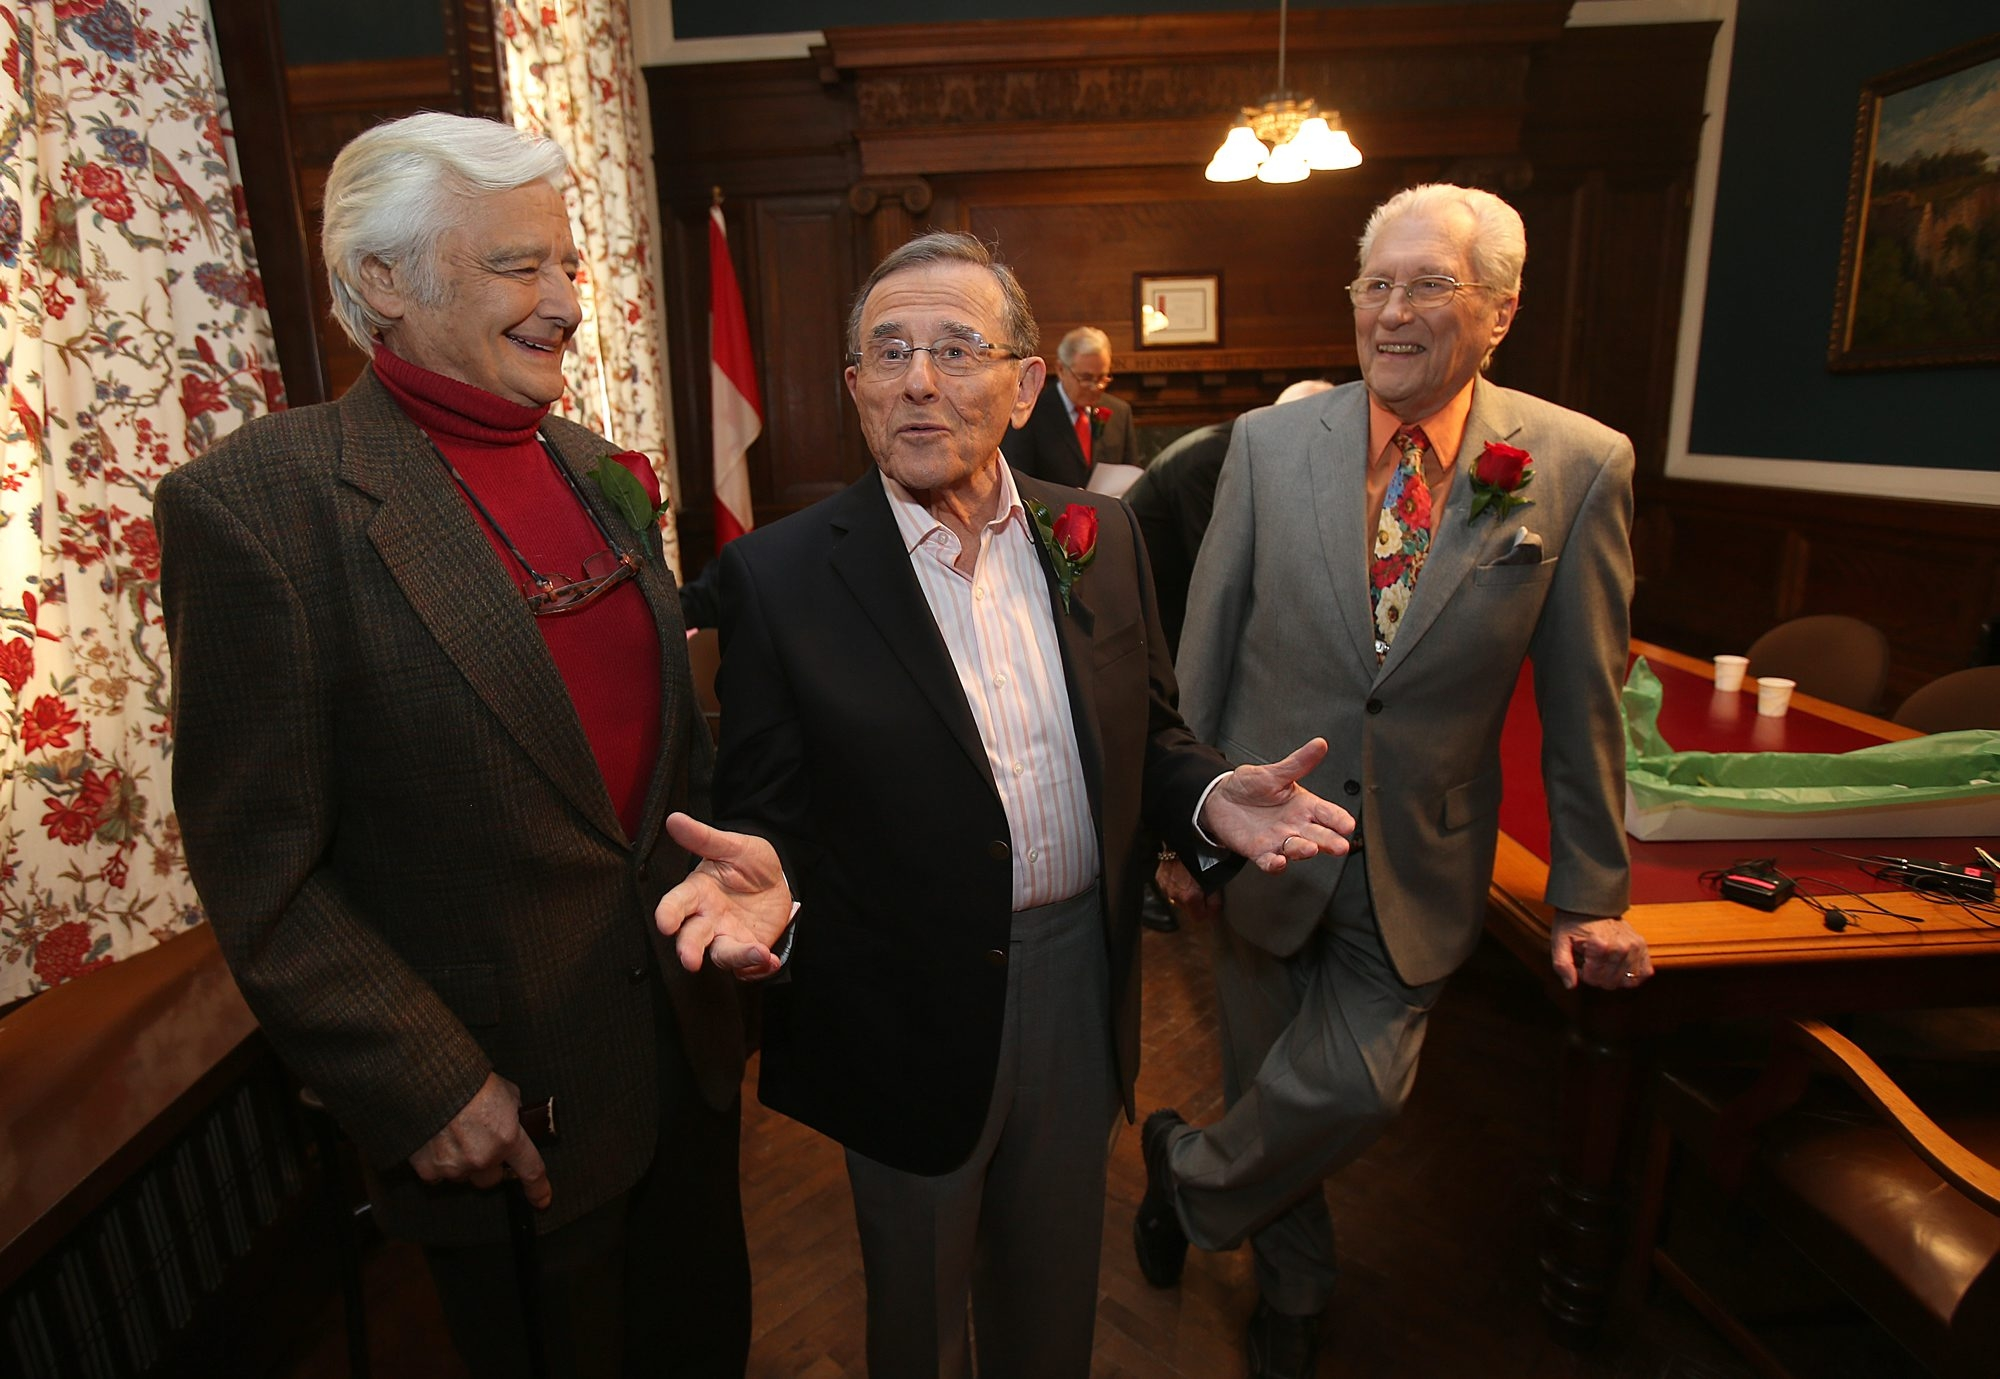 From left, Rick Azar, Irv Weinstein and Tom Jolls, former television journalists for WKBW-TV in Buffalo, chat backstage before appearing in the 'Giants of Buffalo' program at the Buffalo History Museum Friday. (Charles Lewis/Buffalo News)